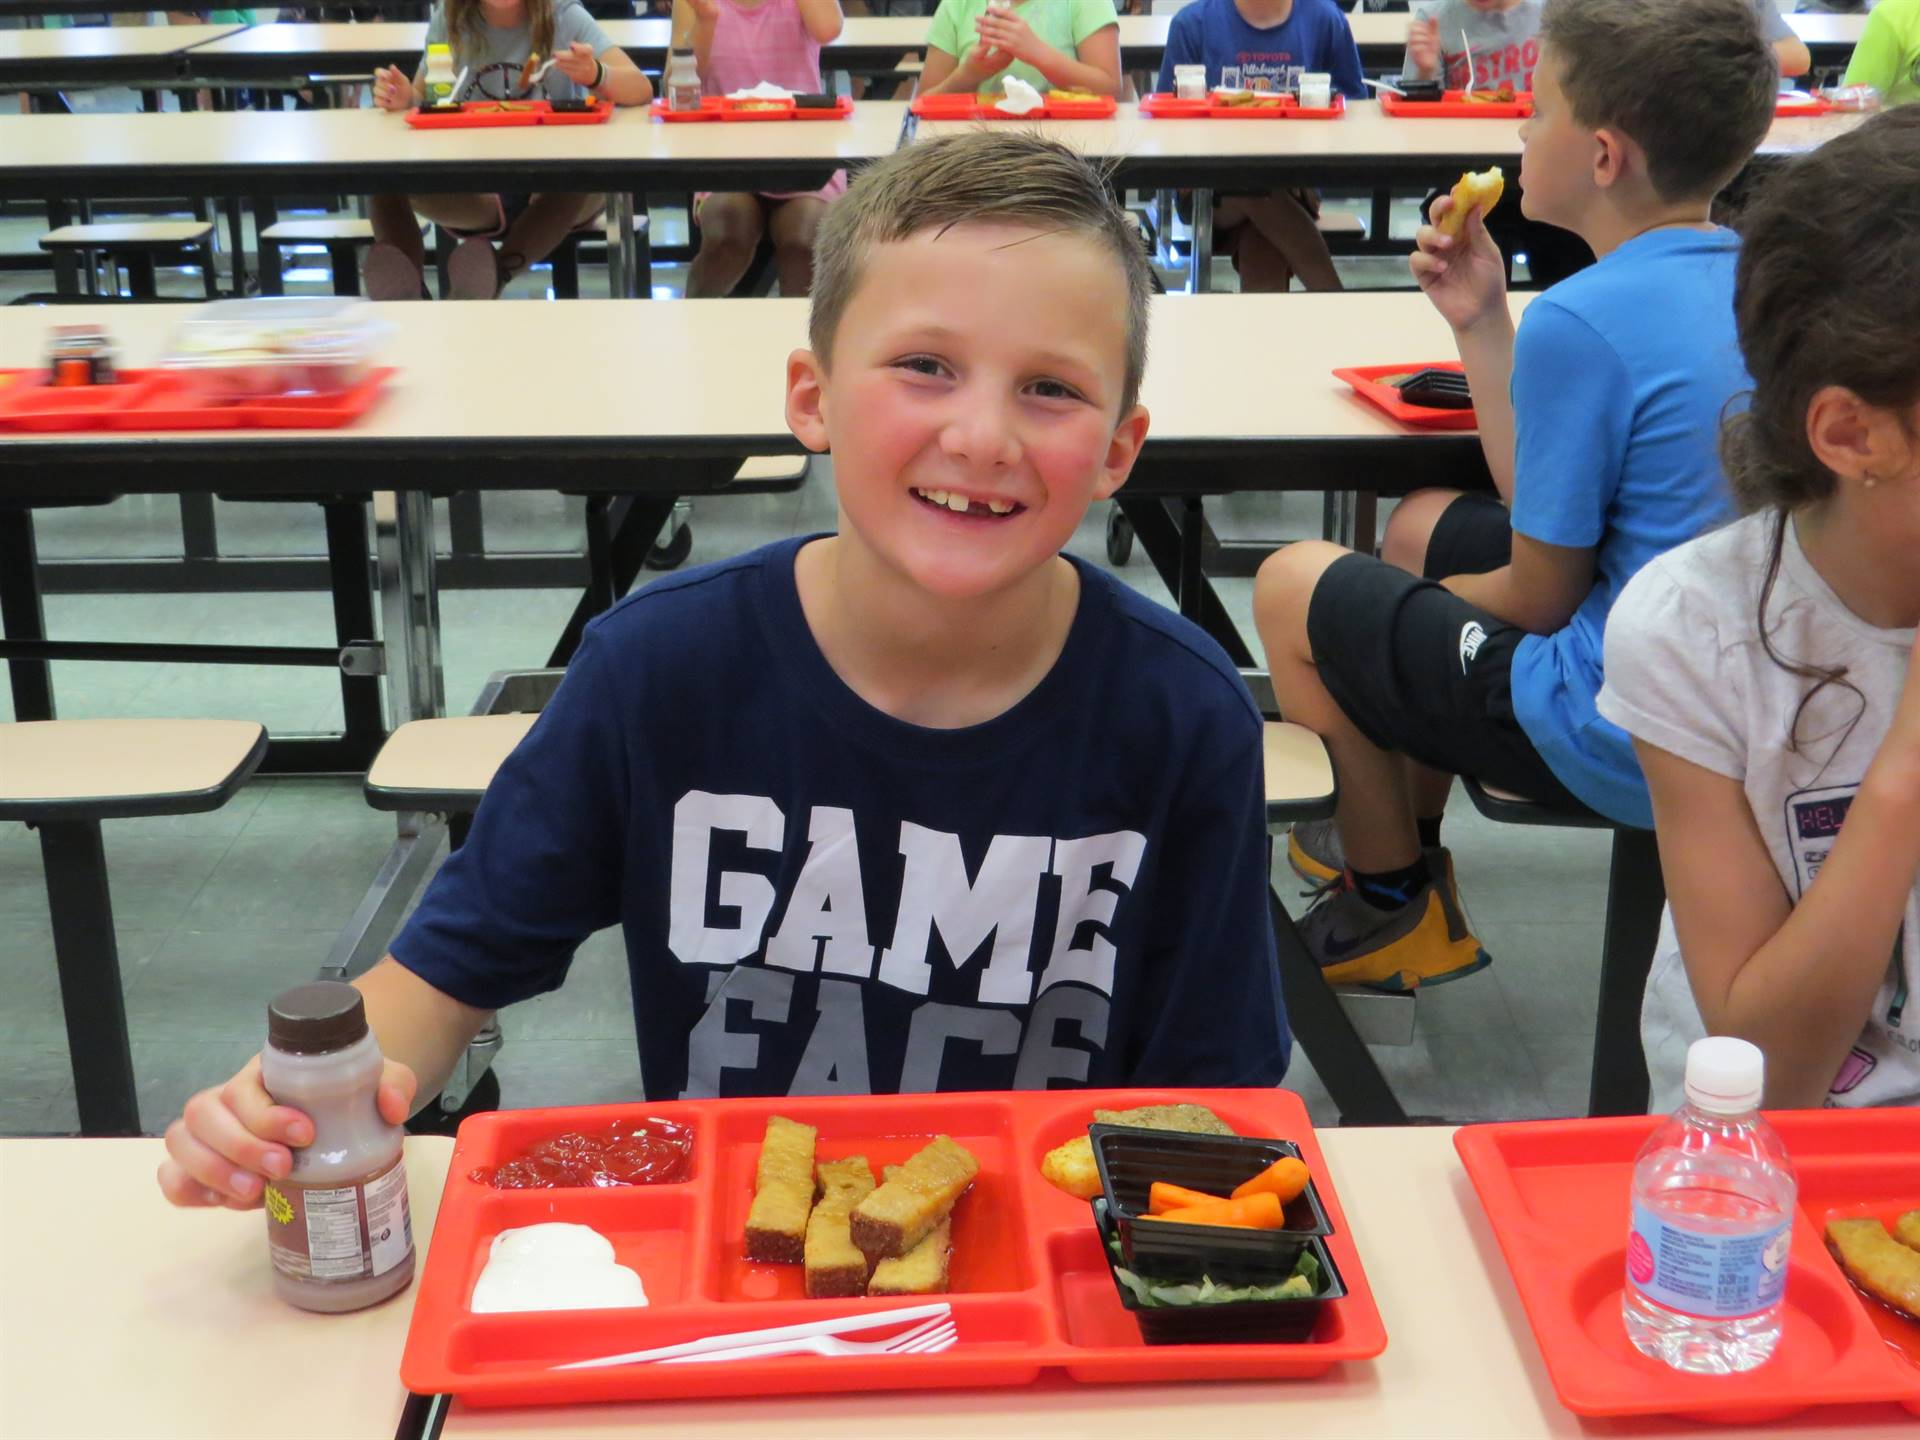 Male elementary student smiling with his lunch tray